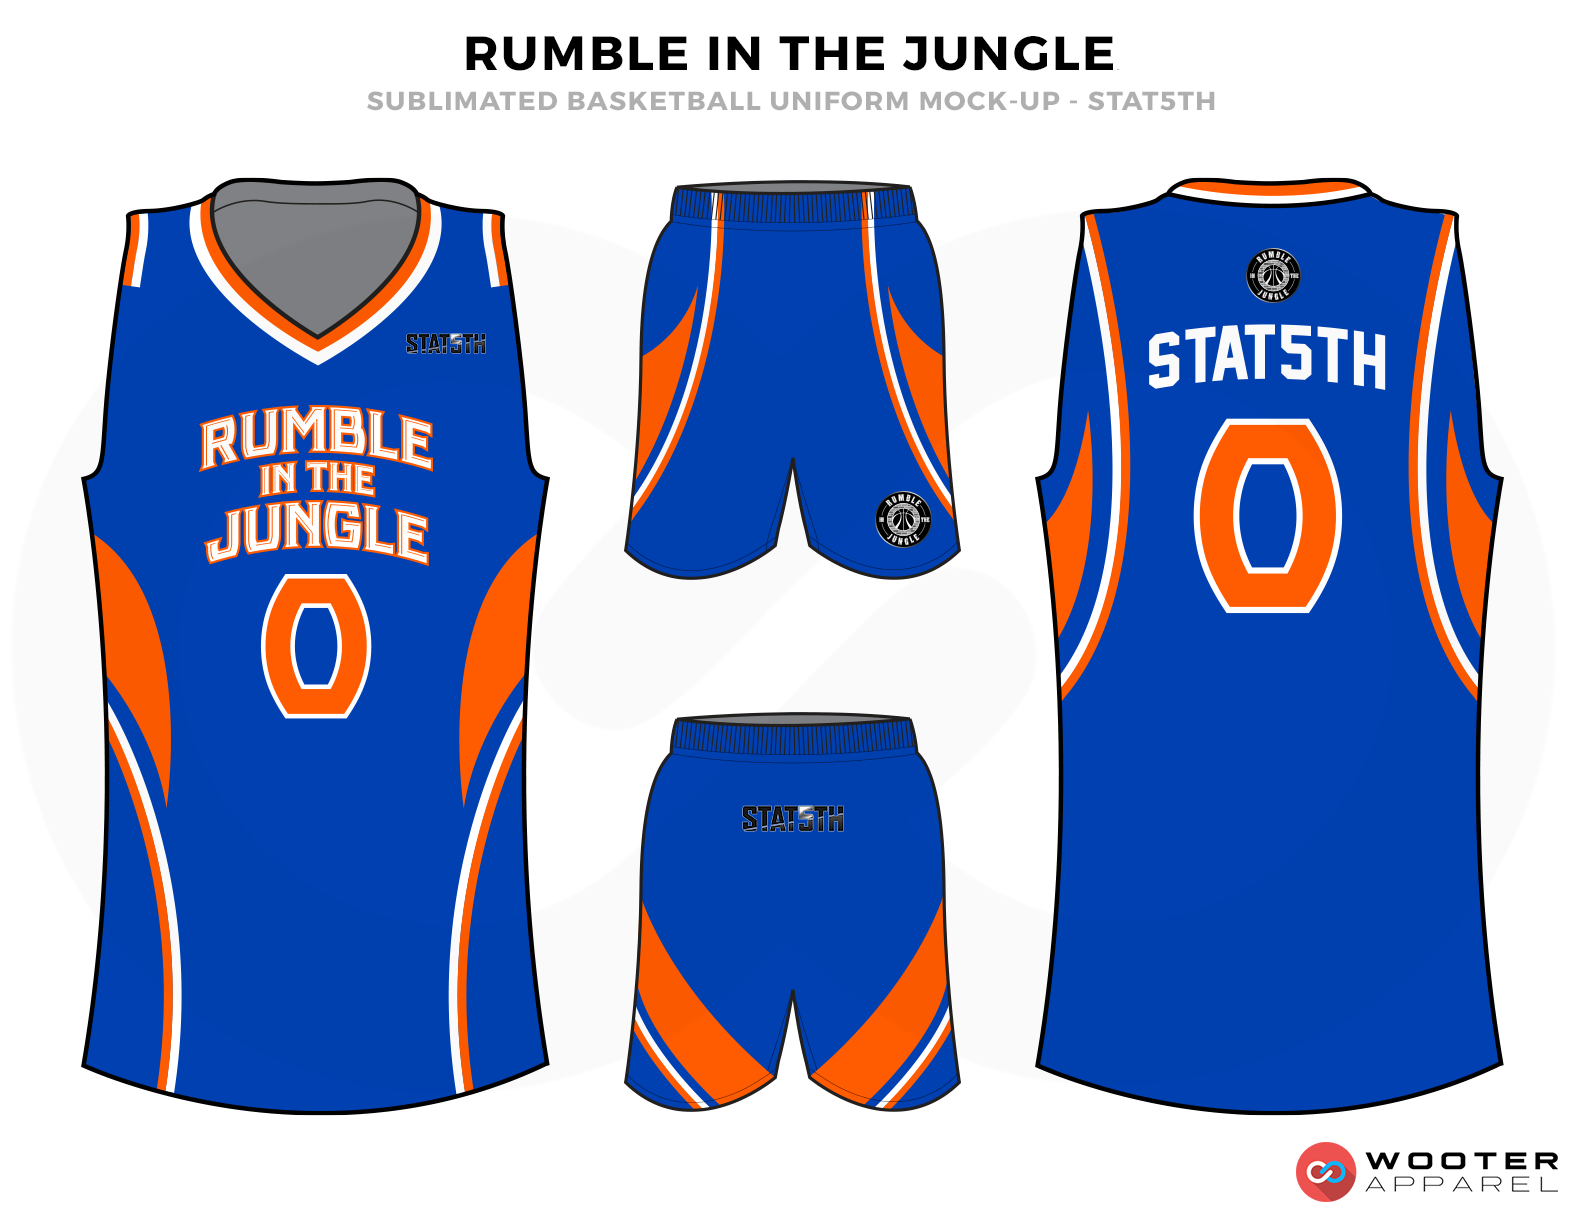 RUMBLE IN THE JUNGLE Blue Orange and White Basketball Uniforms, Jersey and Shorts